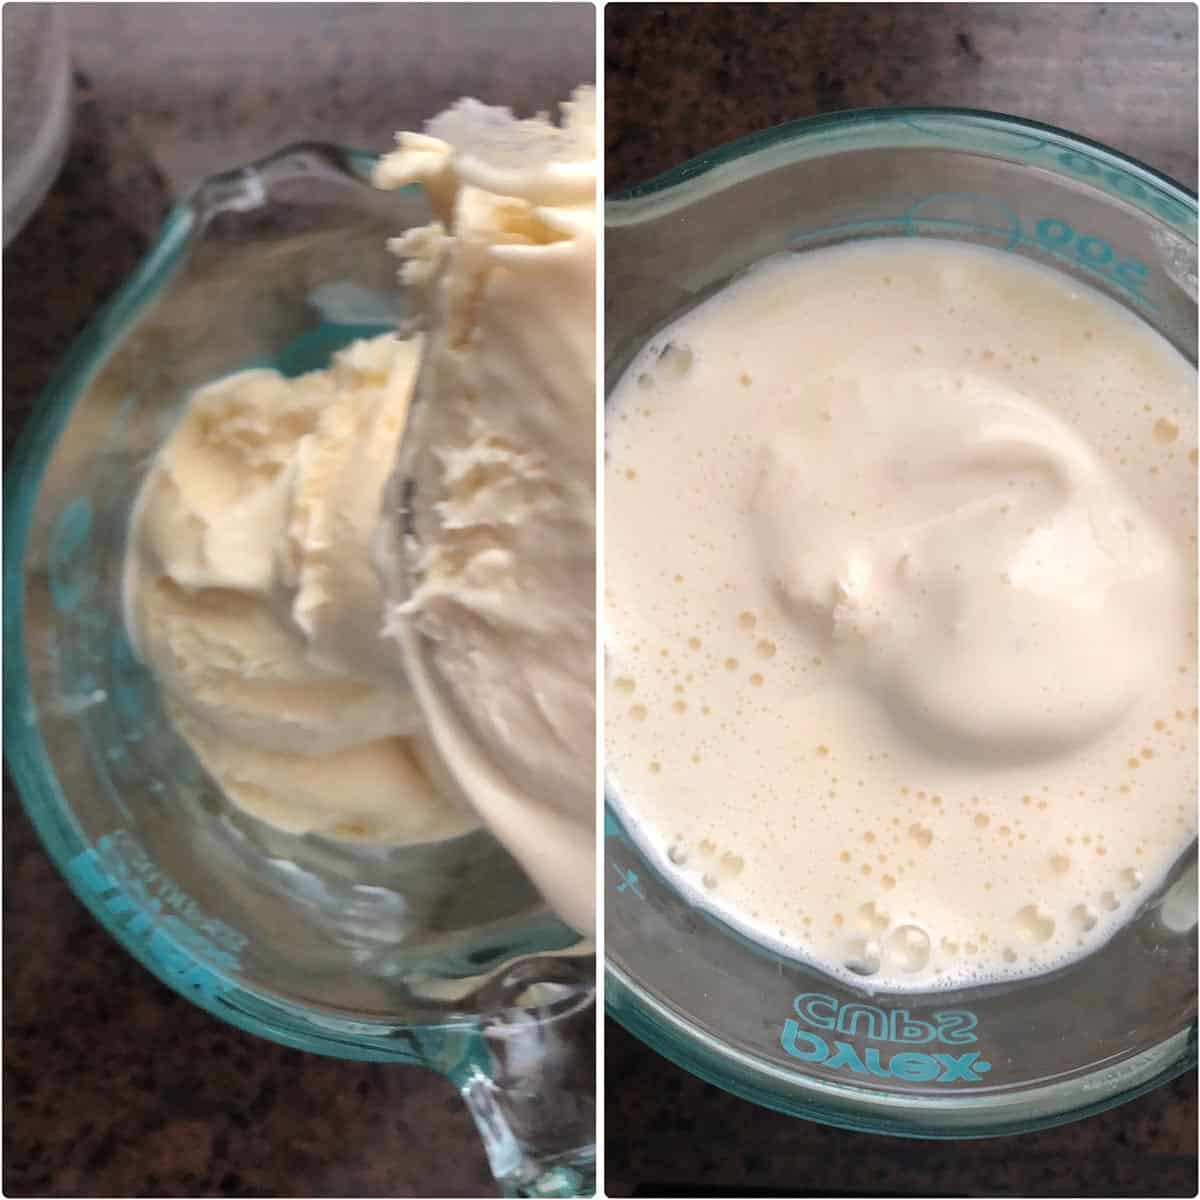 Side by side photos of melted ice cream